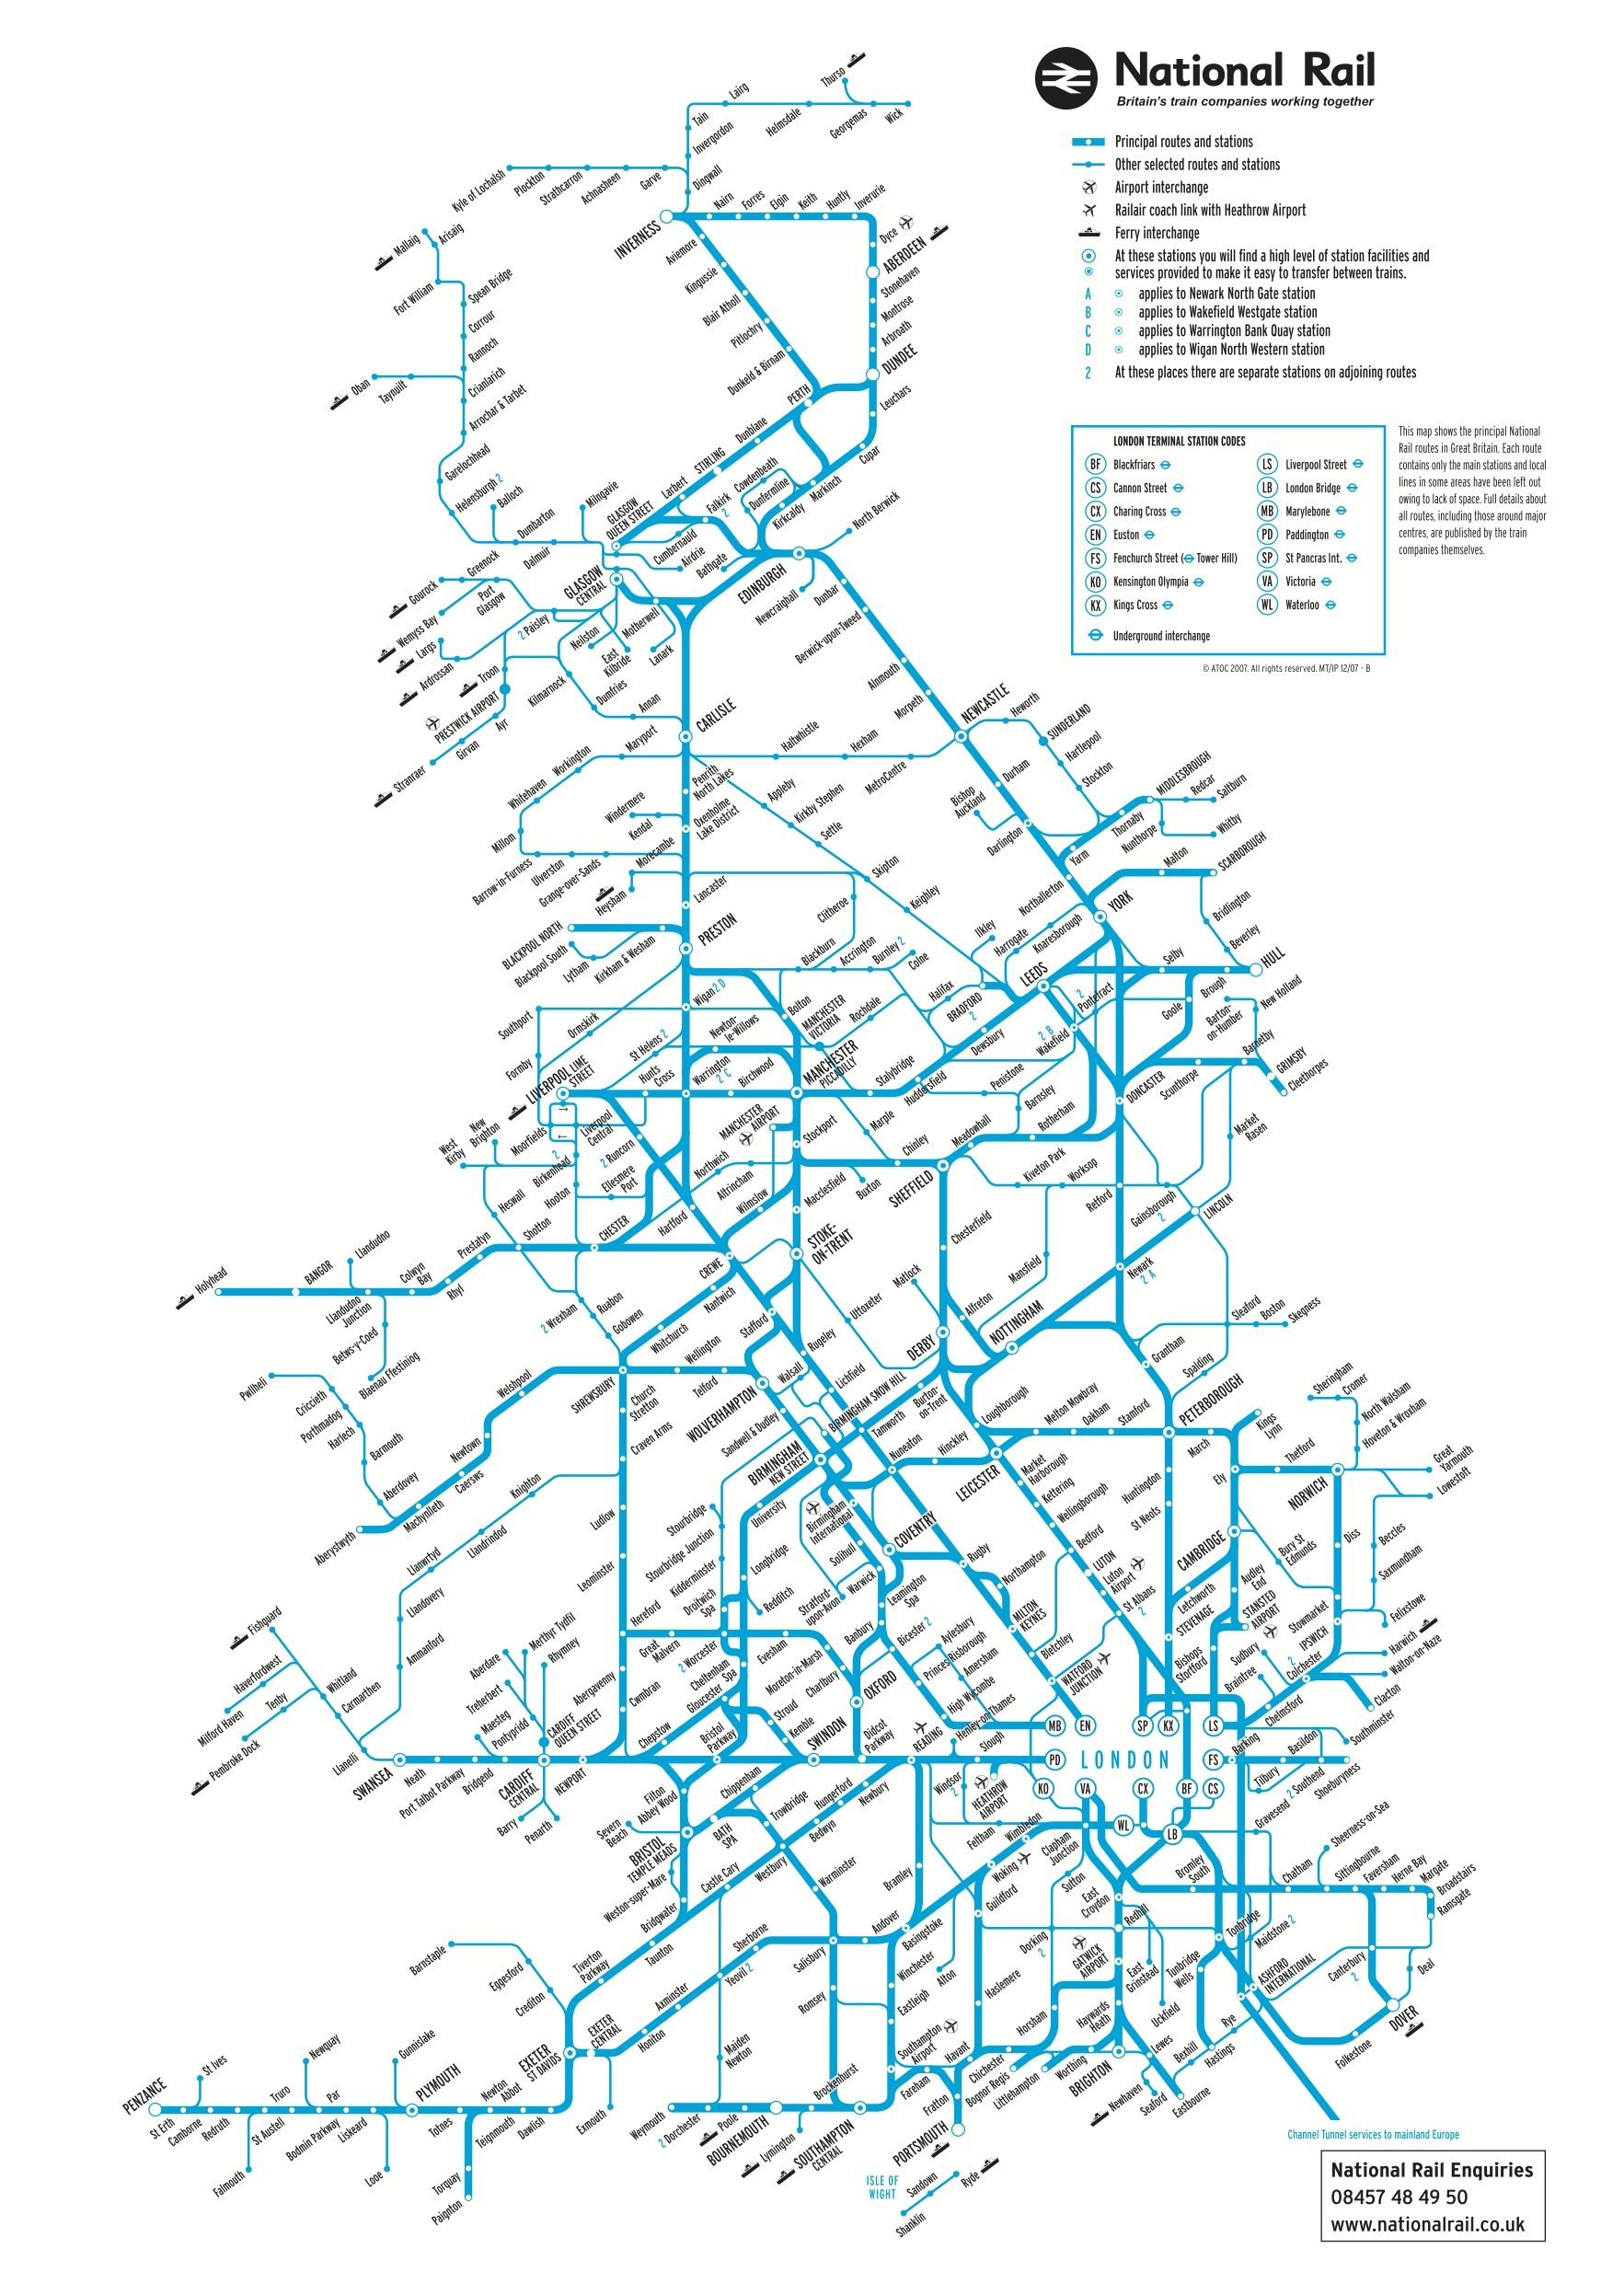 National Rail Map Of All Stations On The Network England Not - National rail map london